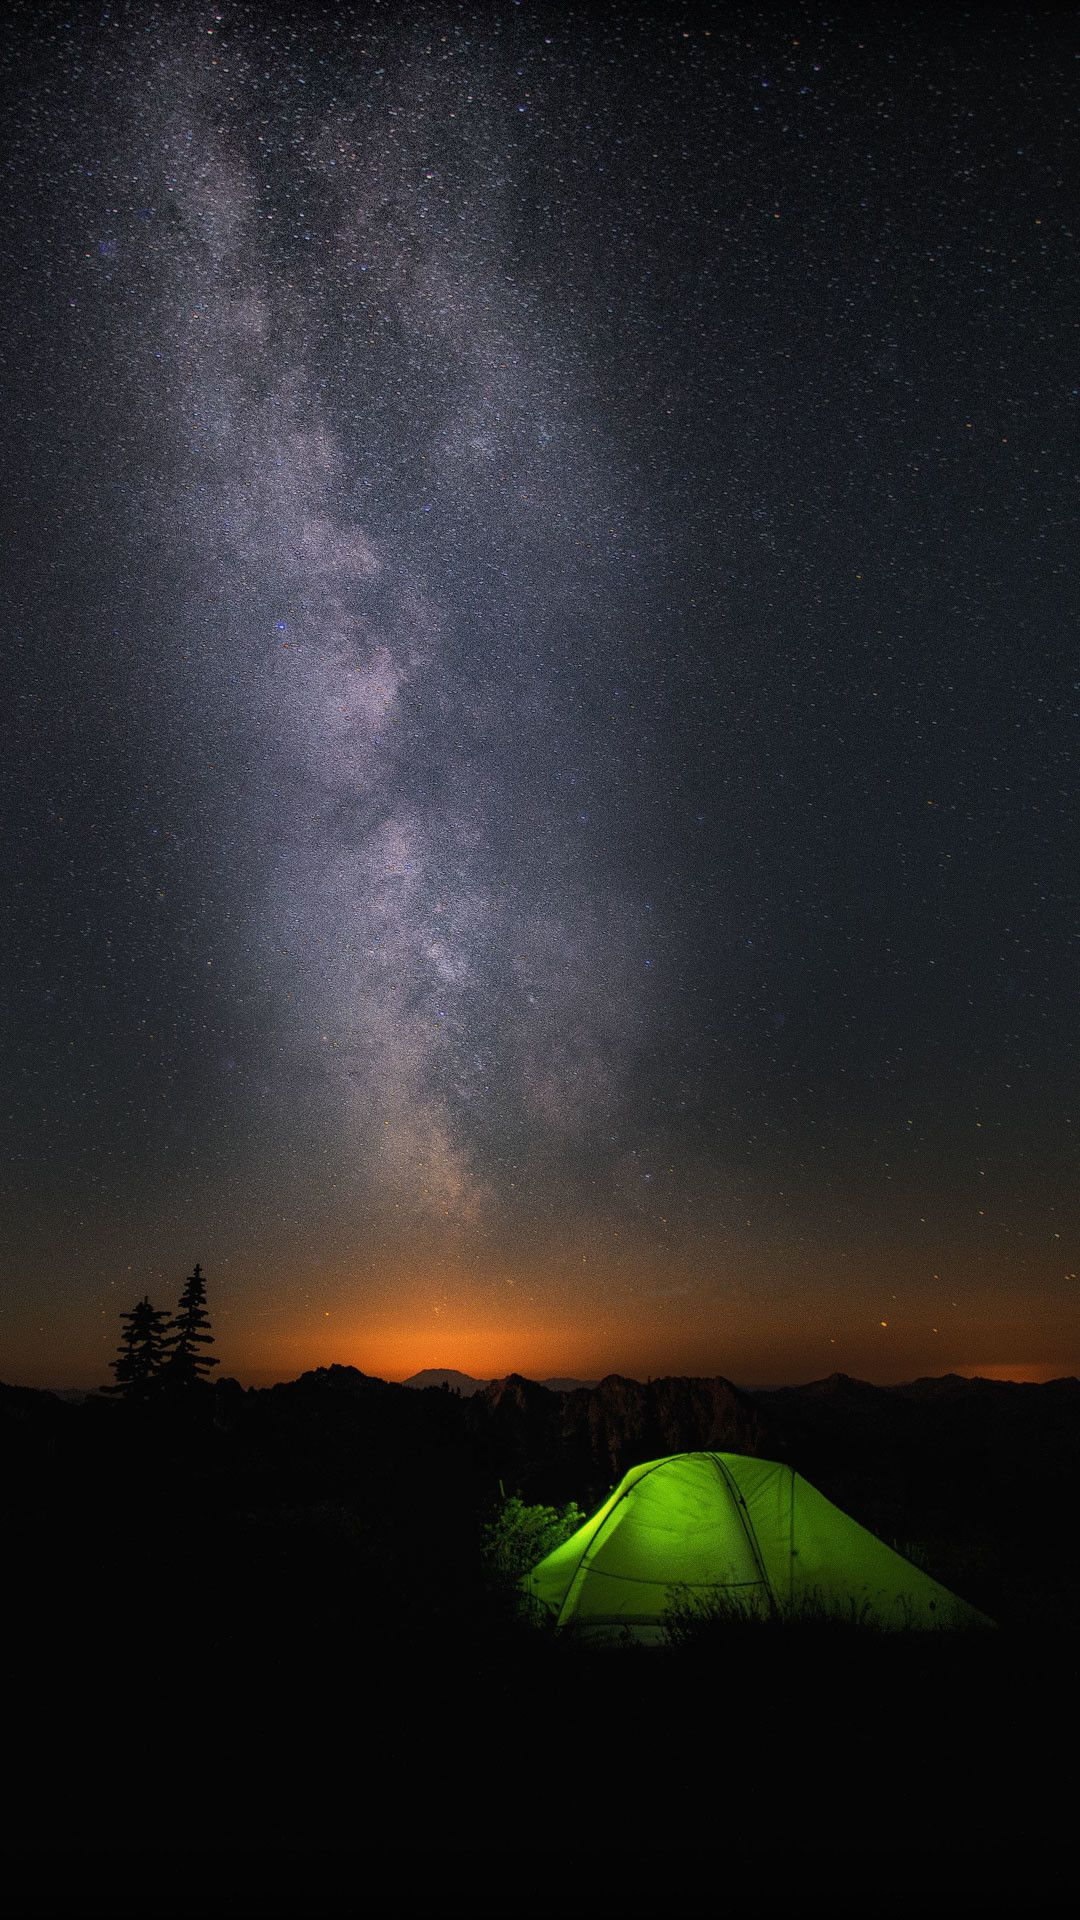 Original Microsoft Wallpaper In 2020 Camping Wallpaper Night Sky Wallpaper Windows 10